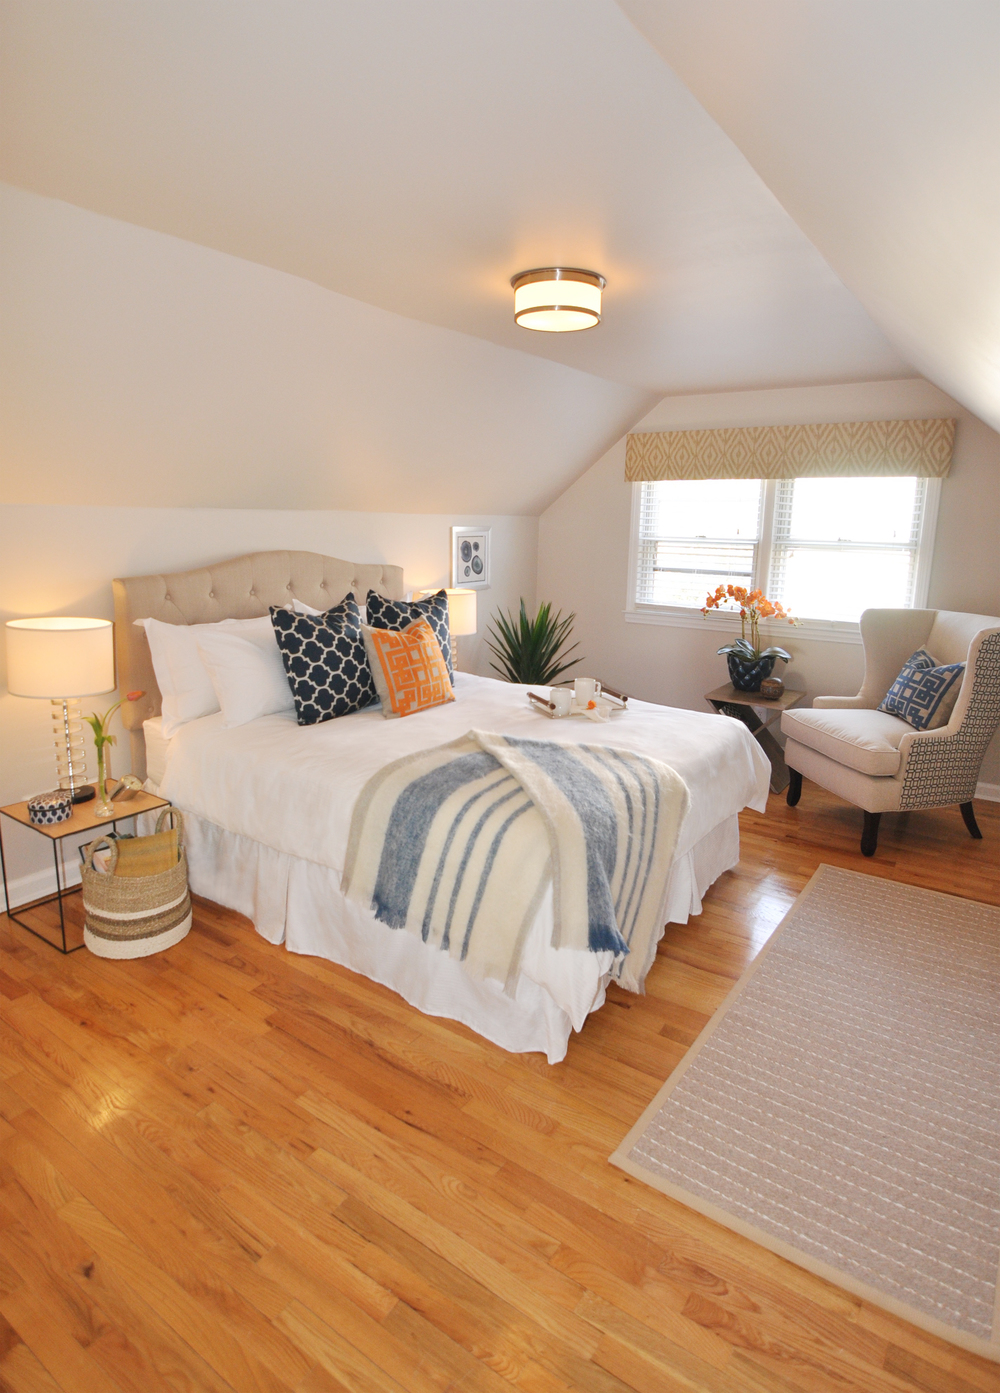 Kim Mitchell_Production Designer_HGTV_Buying and Selling with The Property Brothers_Season 3_Episode 316_Master Bedroom_Navy_Orange_Scandecor Rug_Kontrast Throw Side Table.jpg